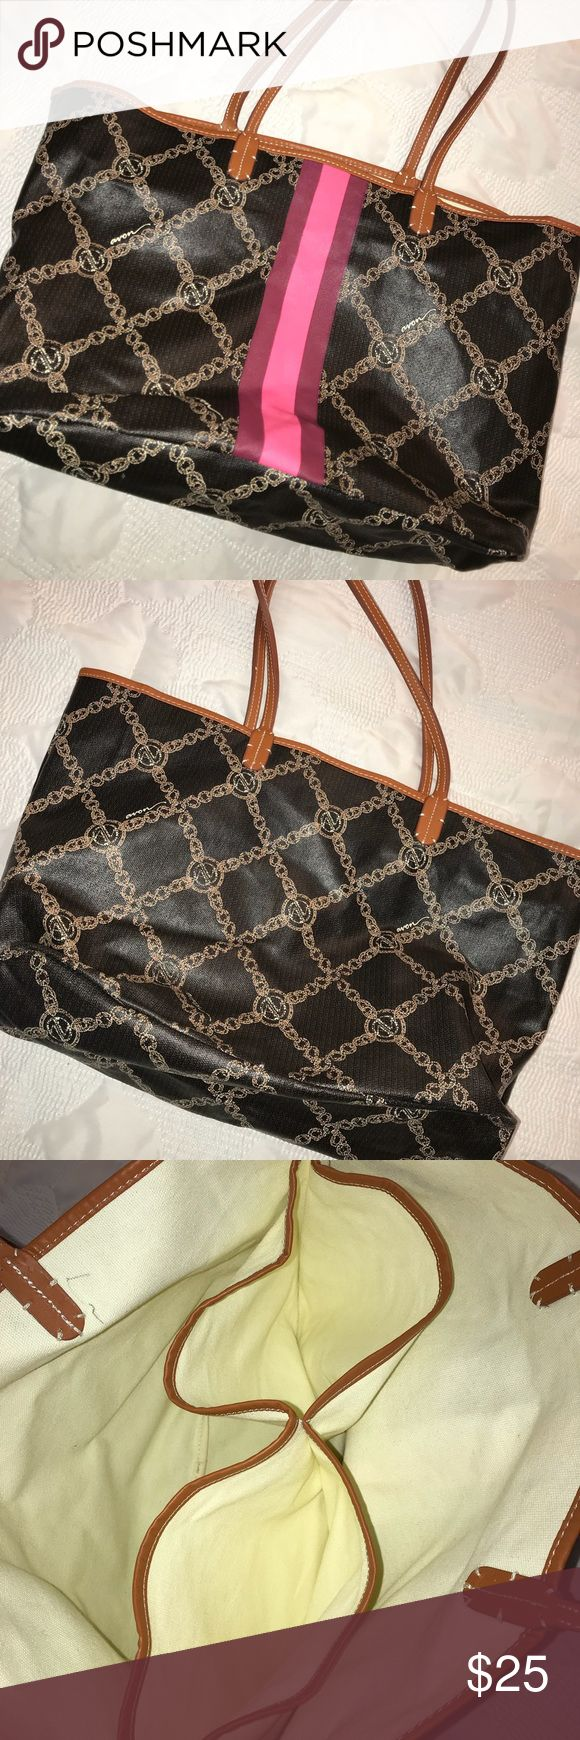 Large Brown Designer Style Tote Bag by Avon Great condition! Nice and big, perfect for travel or the gym! Has middle divider woh 2 pouches. Leather straps. Pink stripe on one side. Only flaw is a small pen mark seen in photo. Similar style design to Louis Vuitton, Gucci, etc Avon Bags Totes